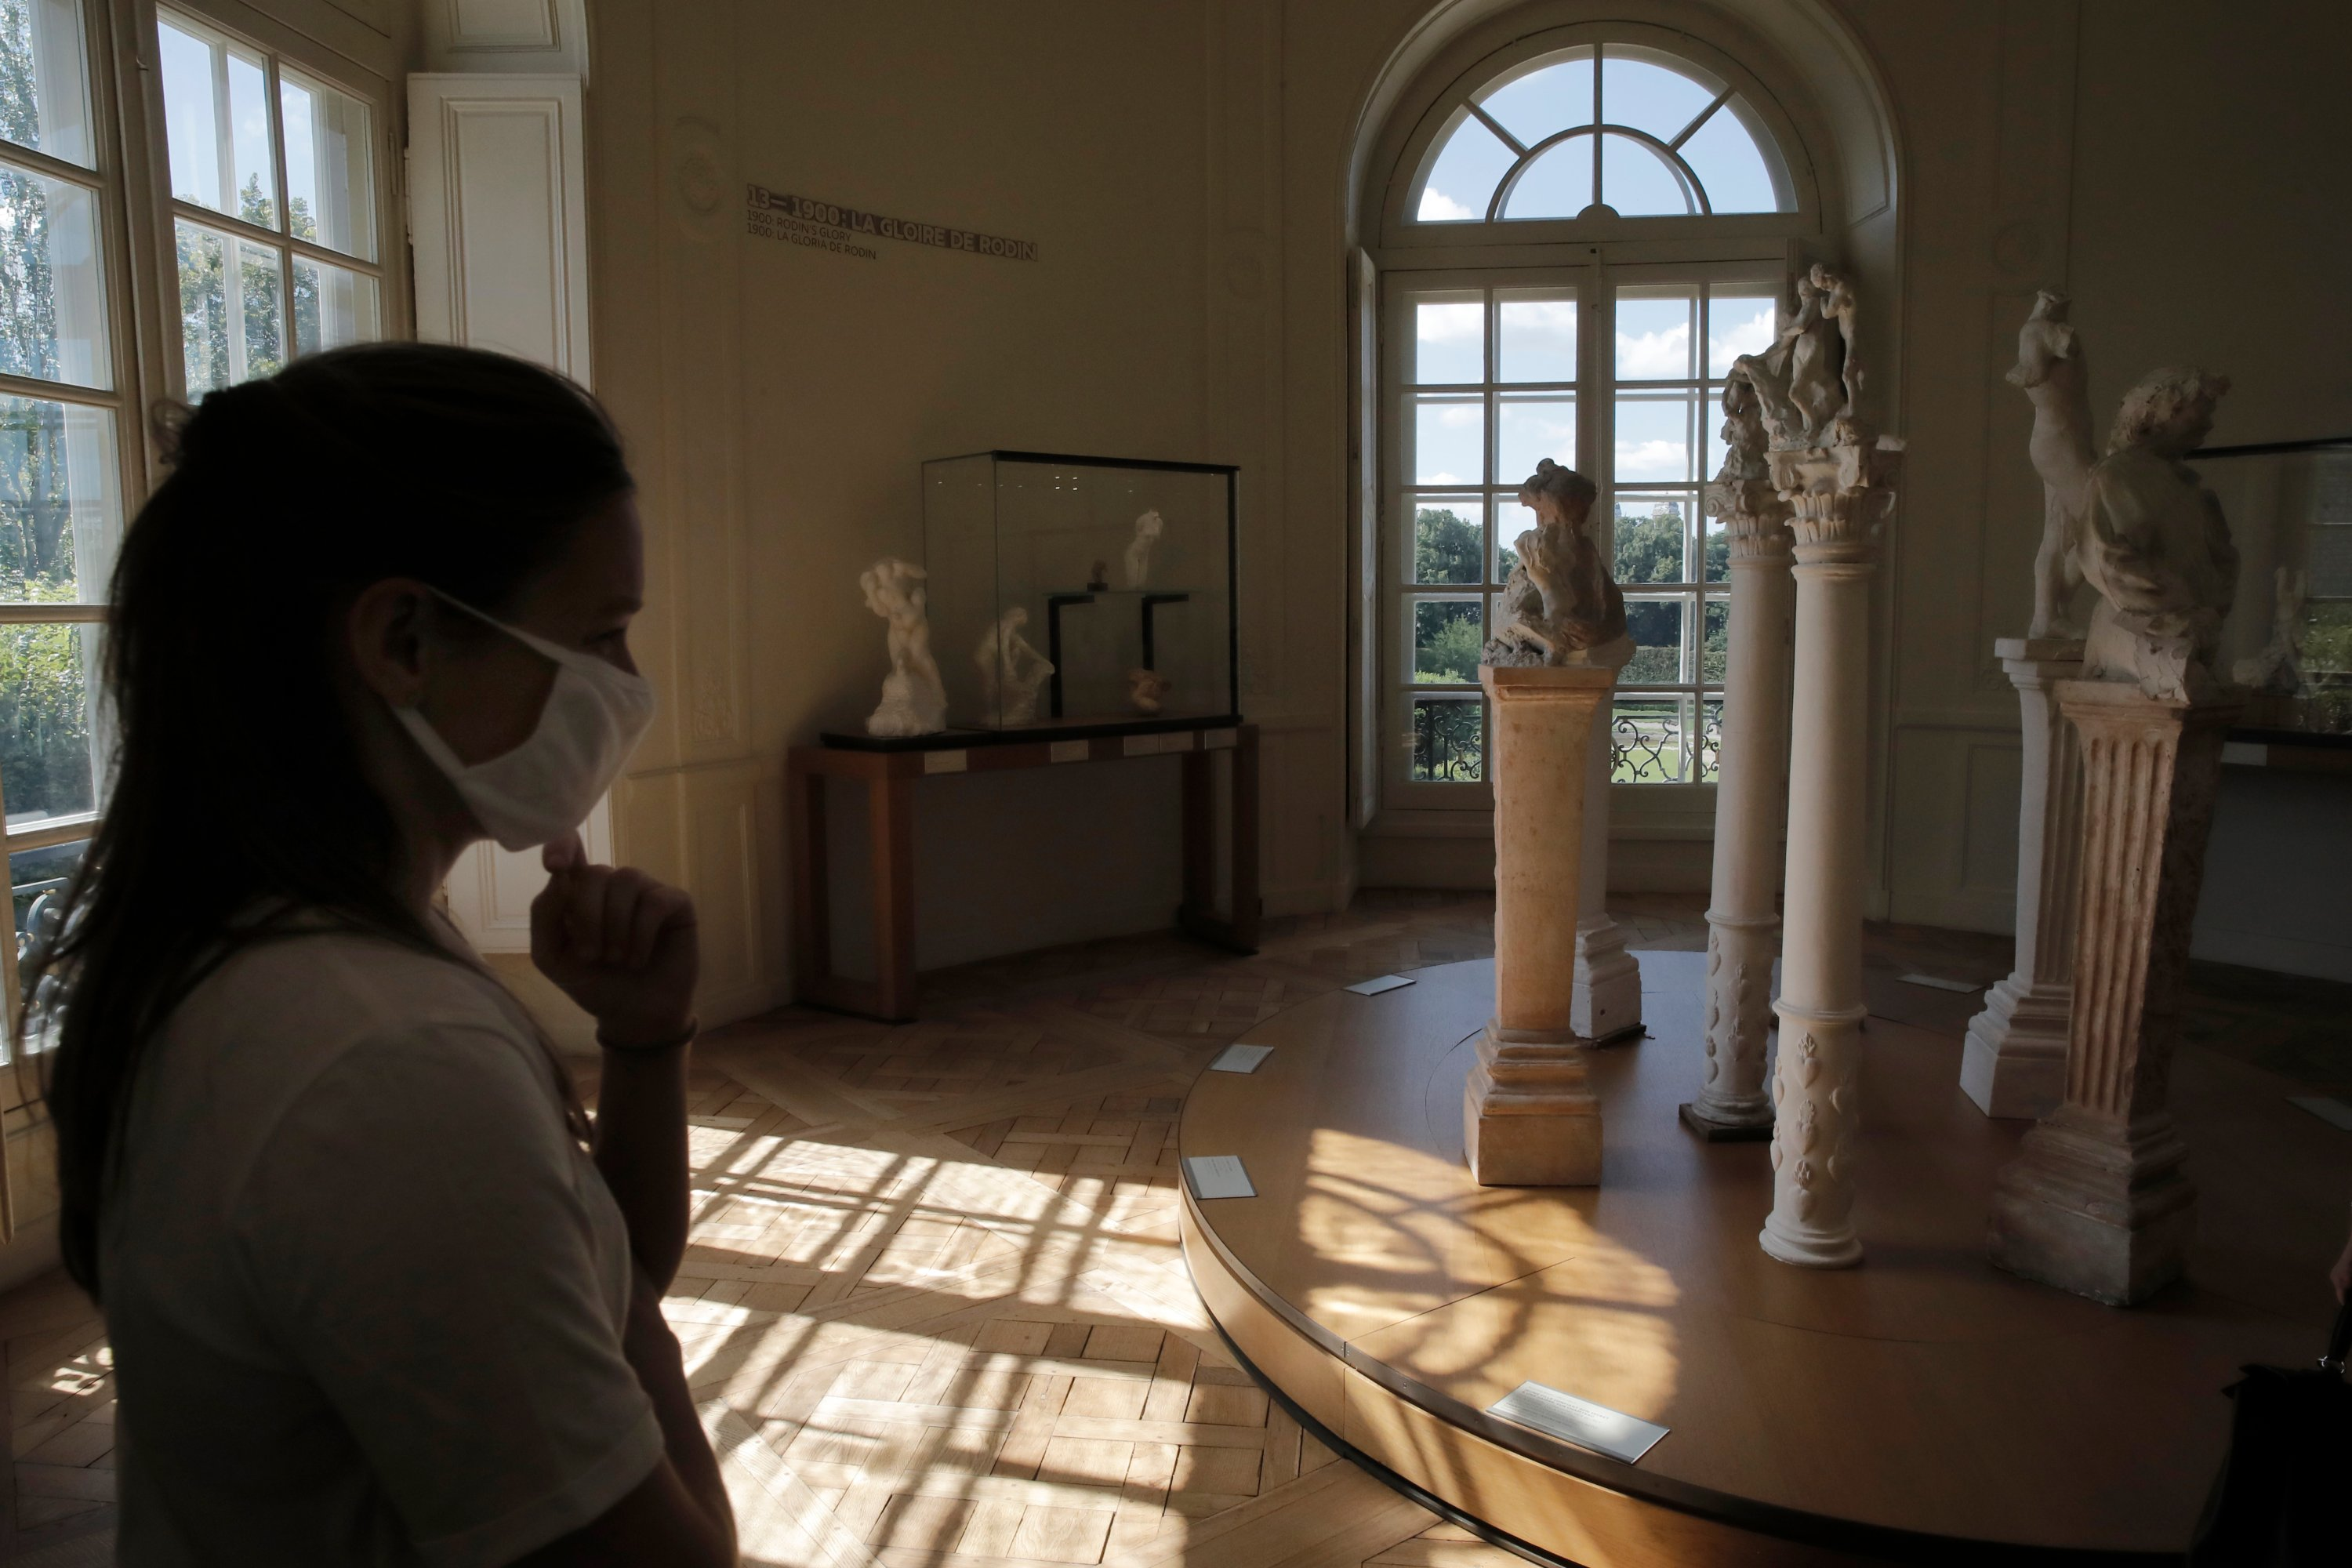 A guest visits the Rodin museum in Paris, France, July 7, 2020. (AP Photo)